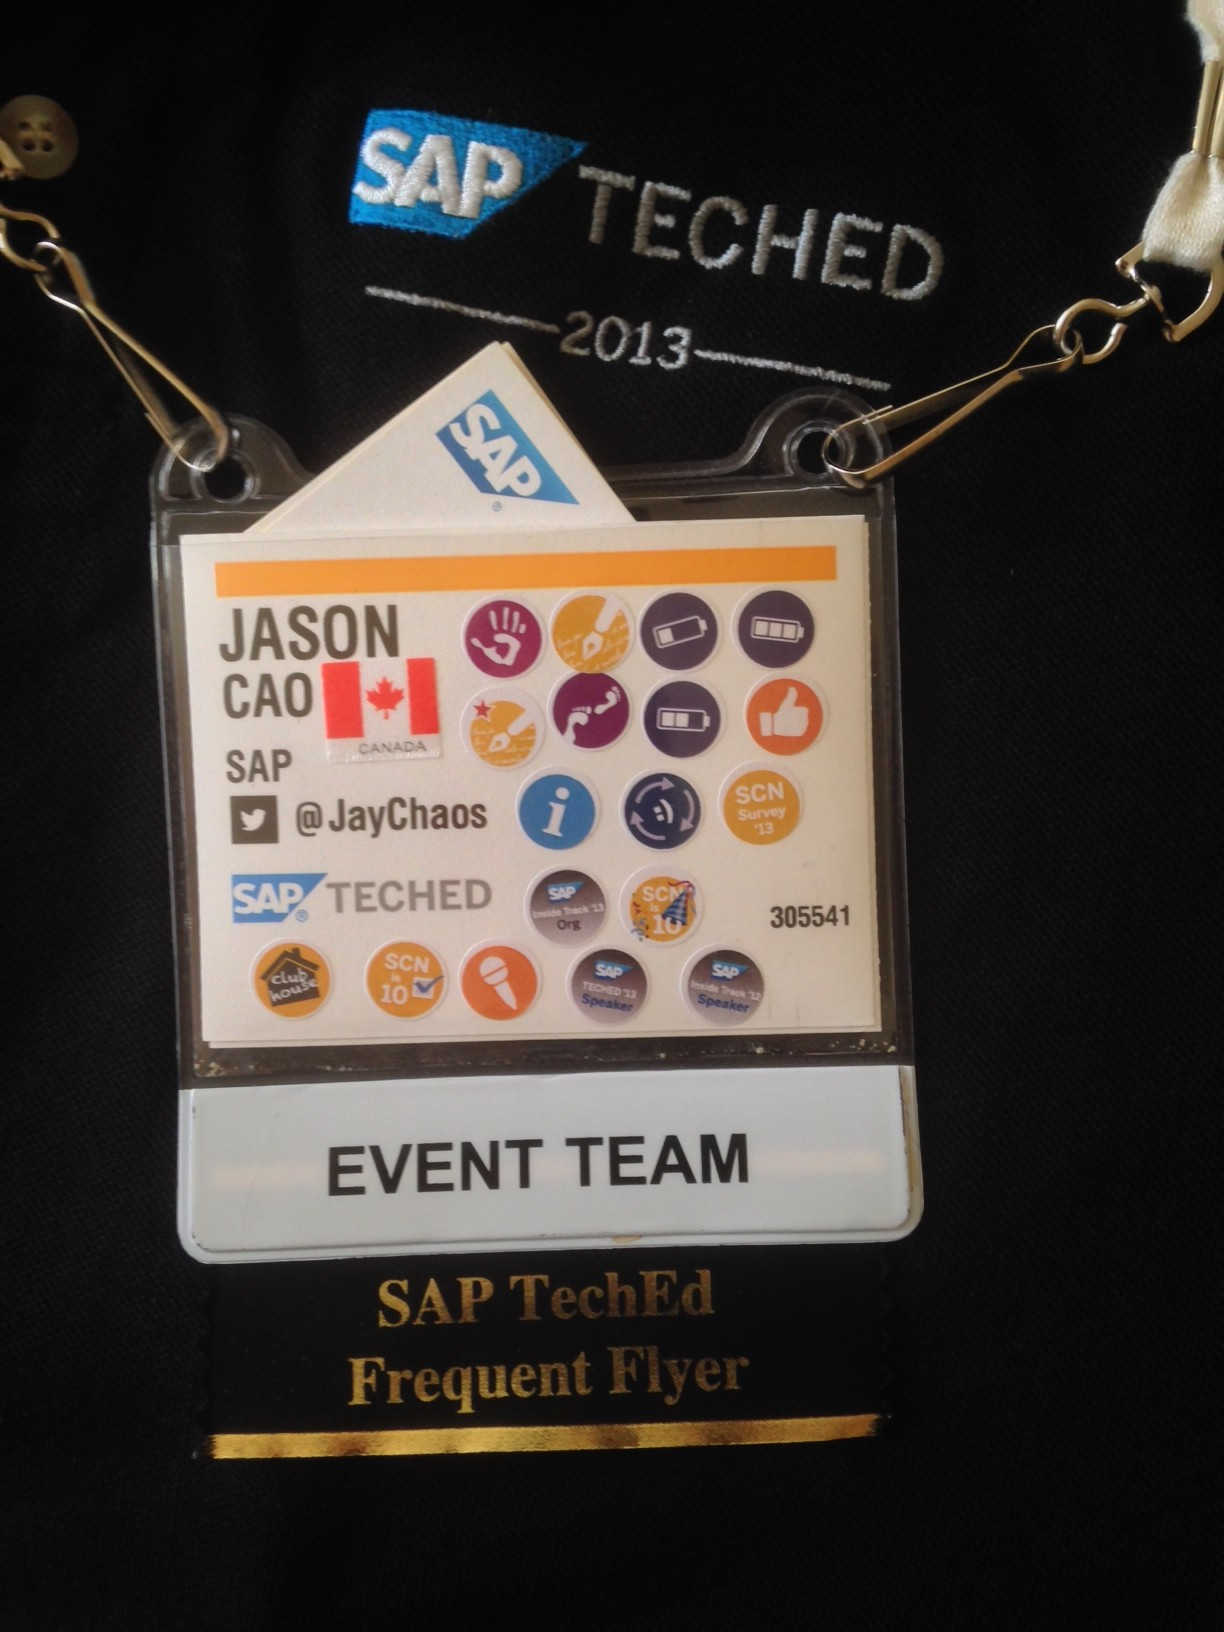 SAP TechEd 2013 Las Vegas.JPG